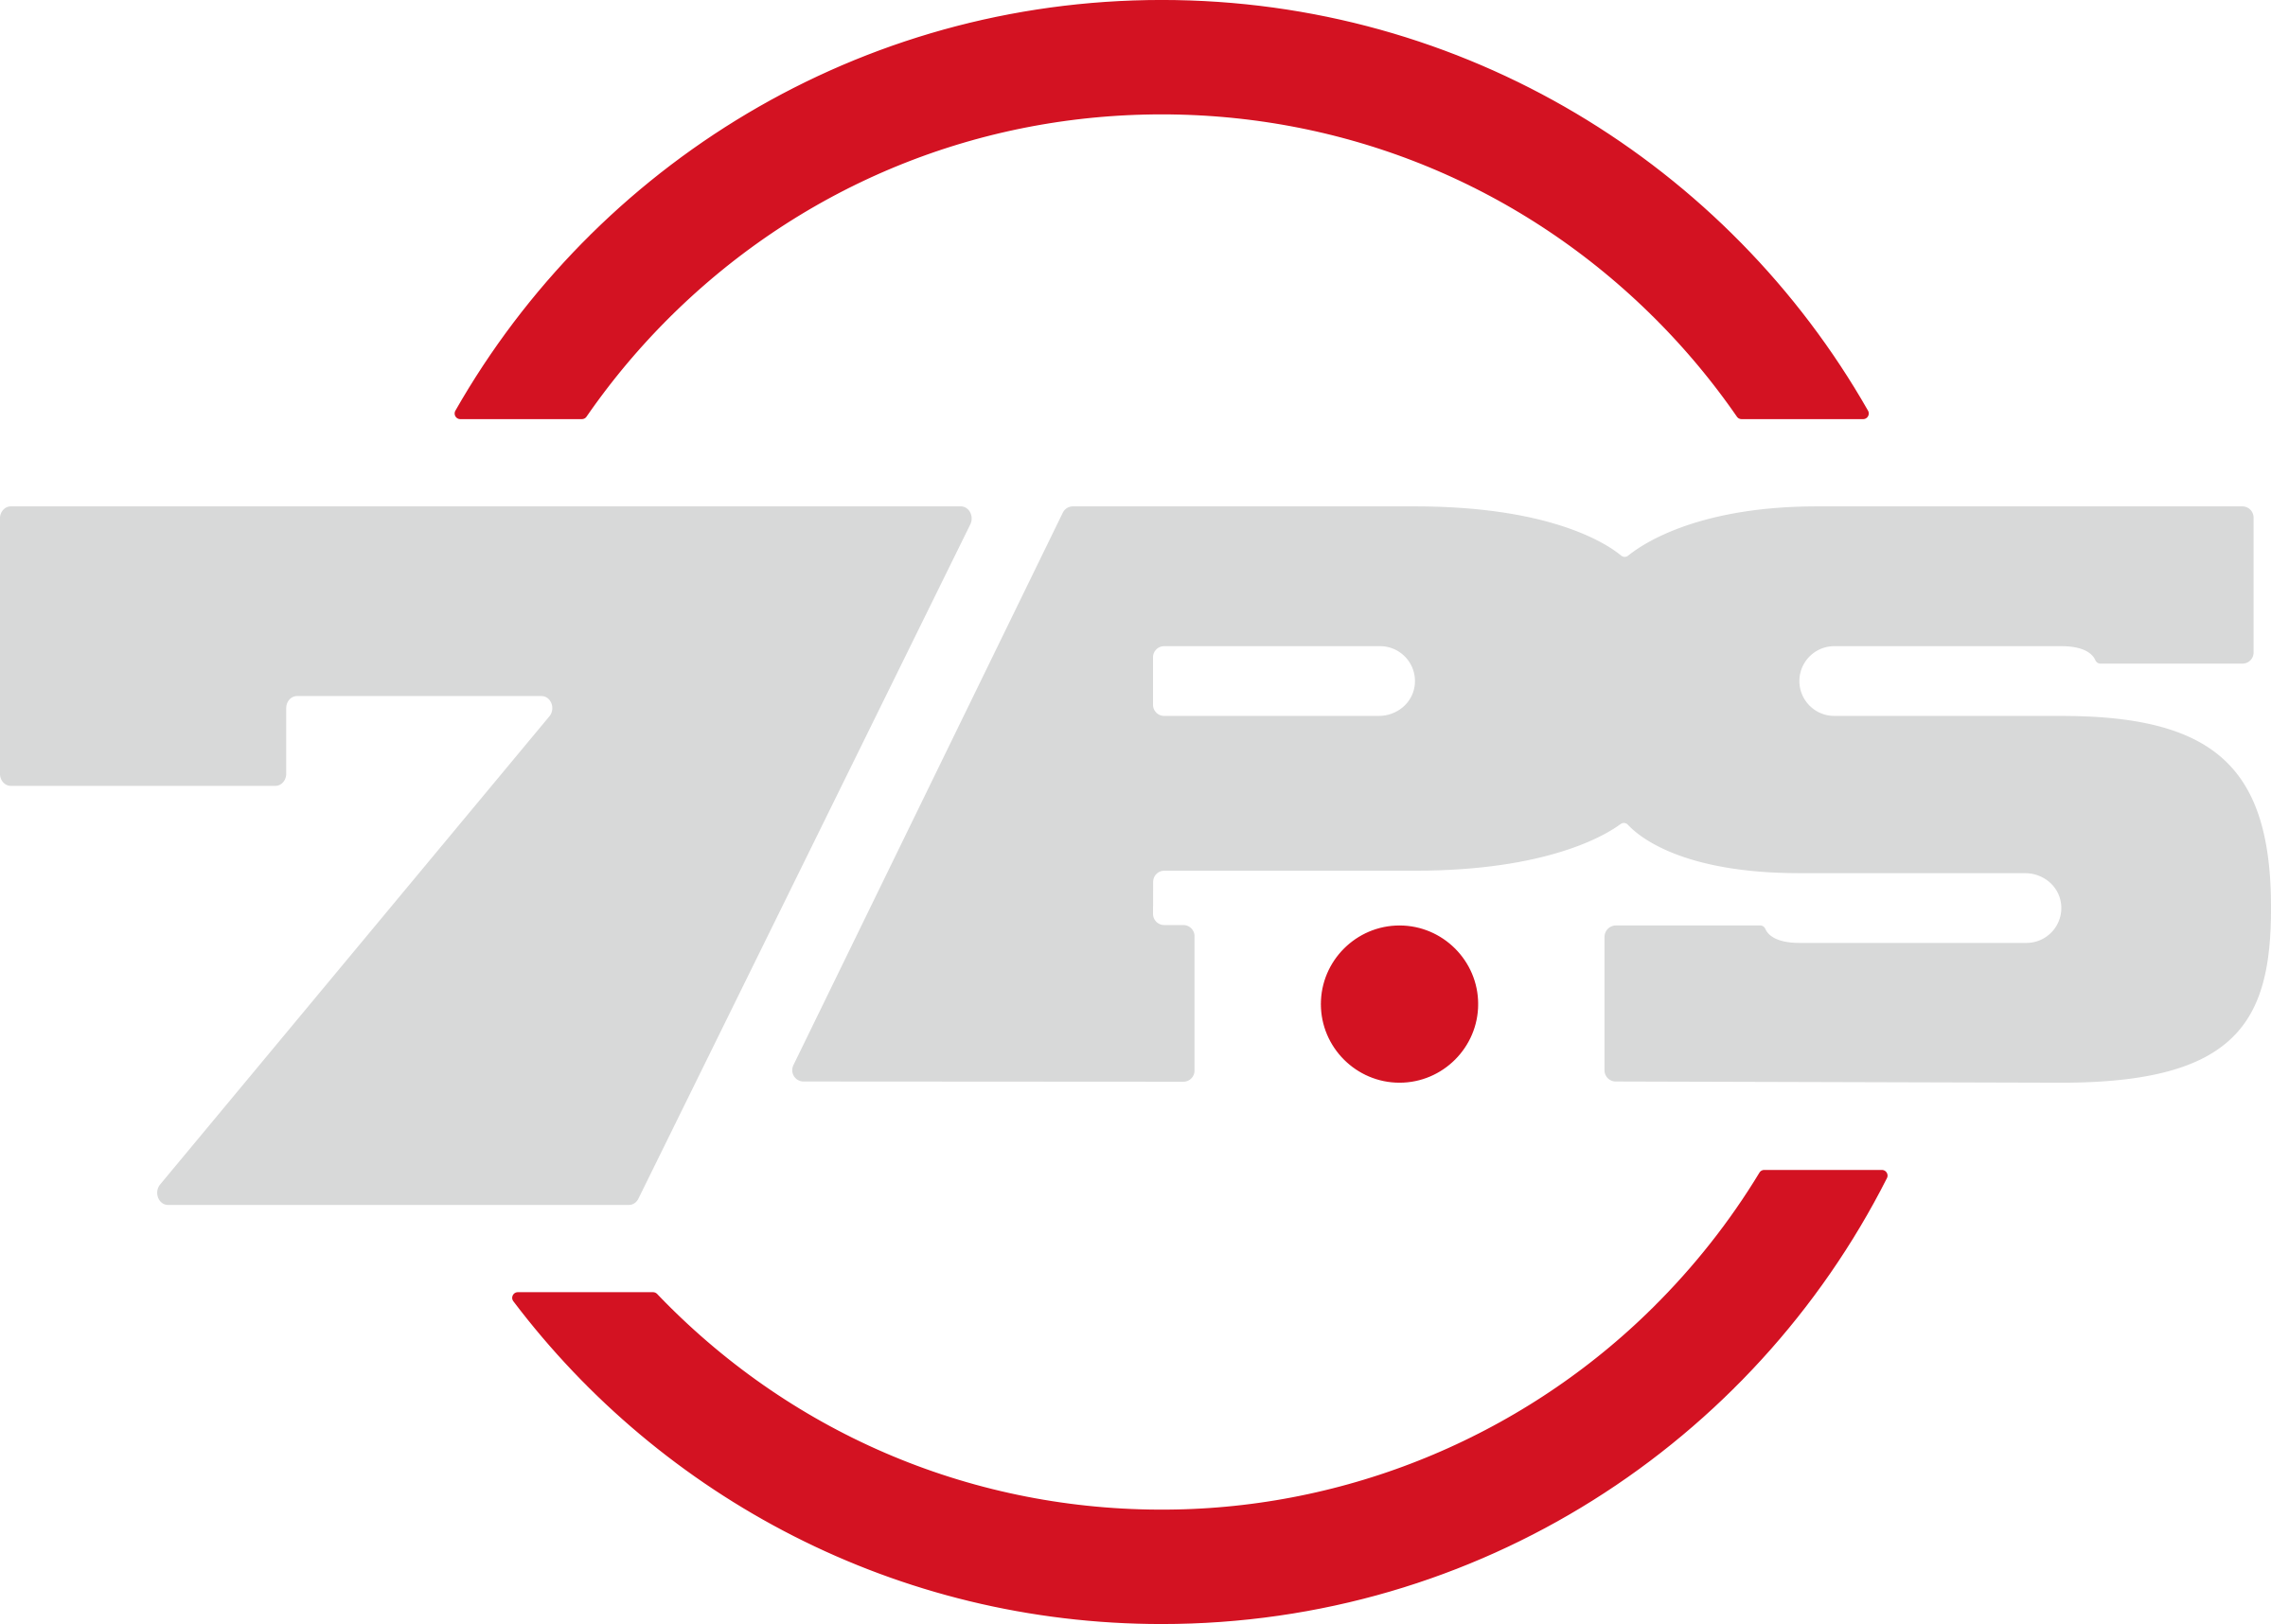 7PS_LOGO_Only